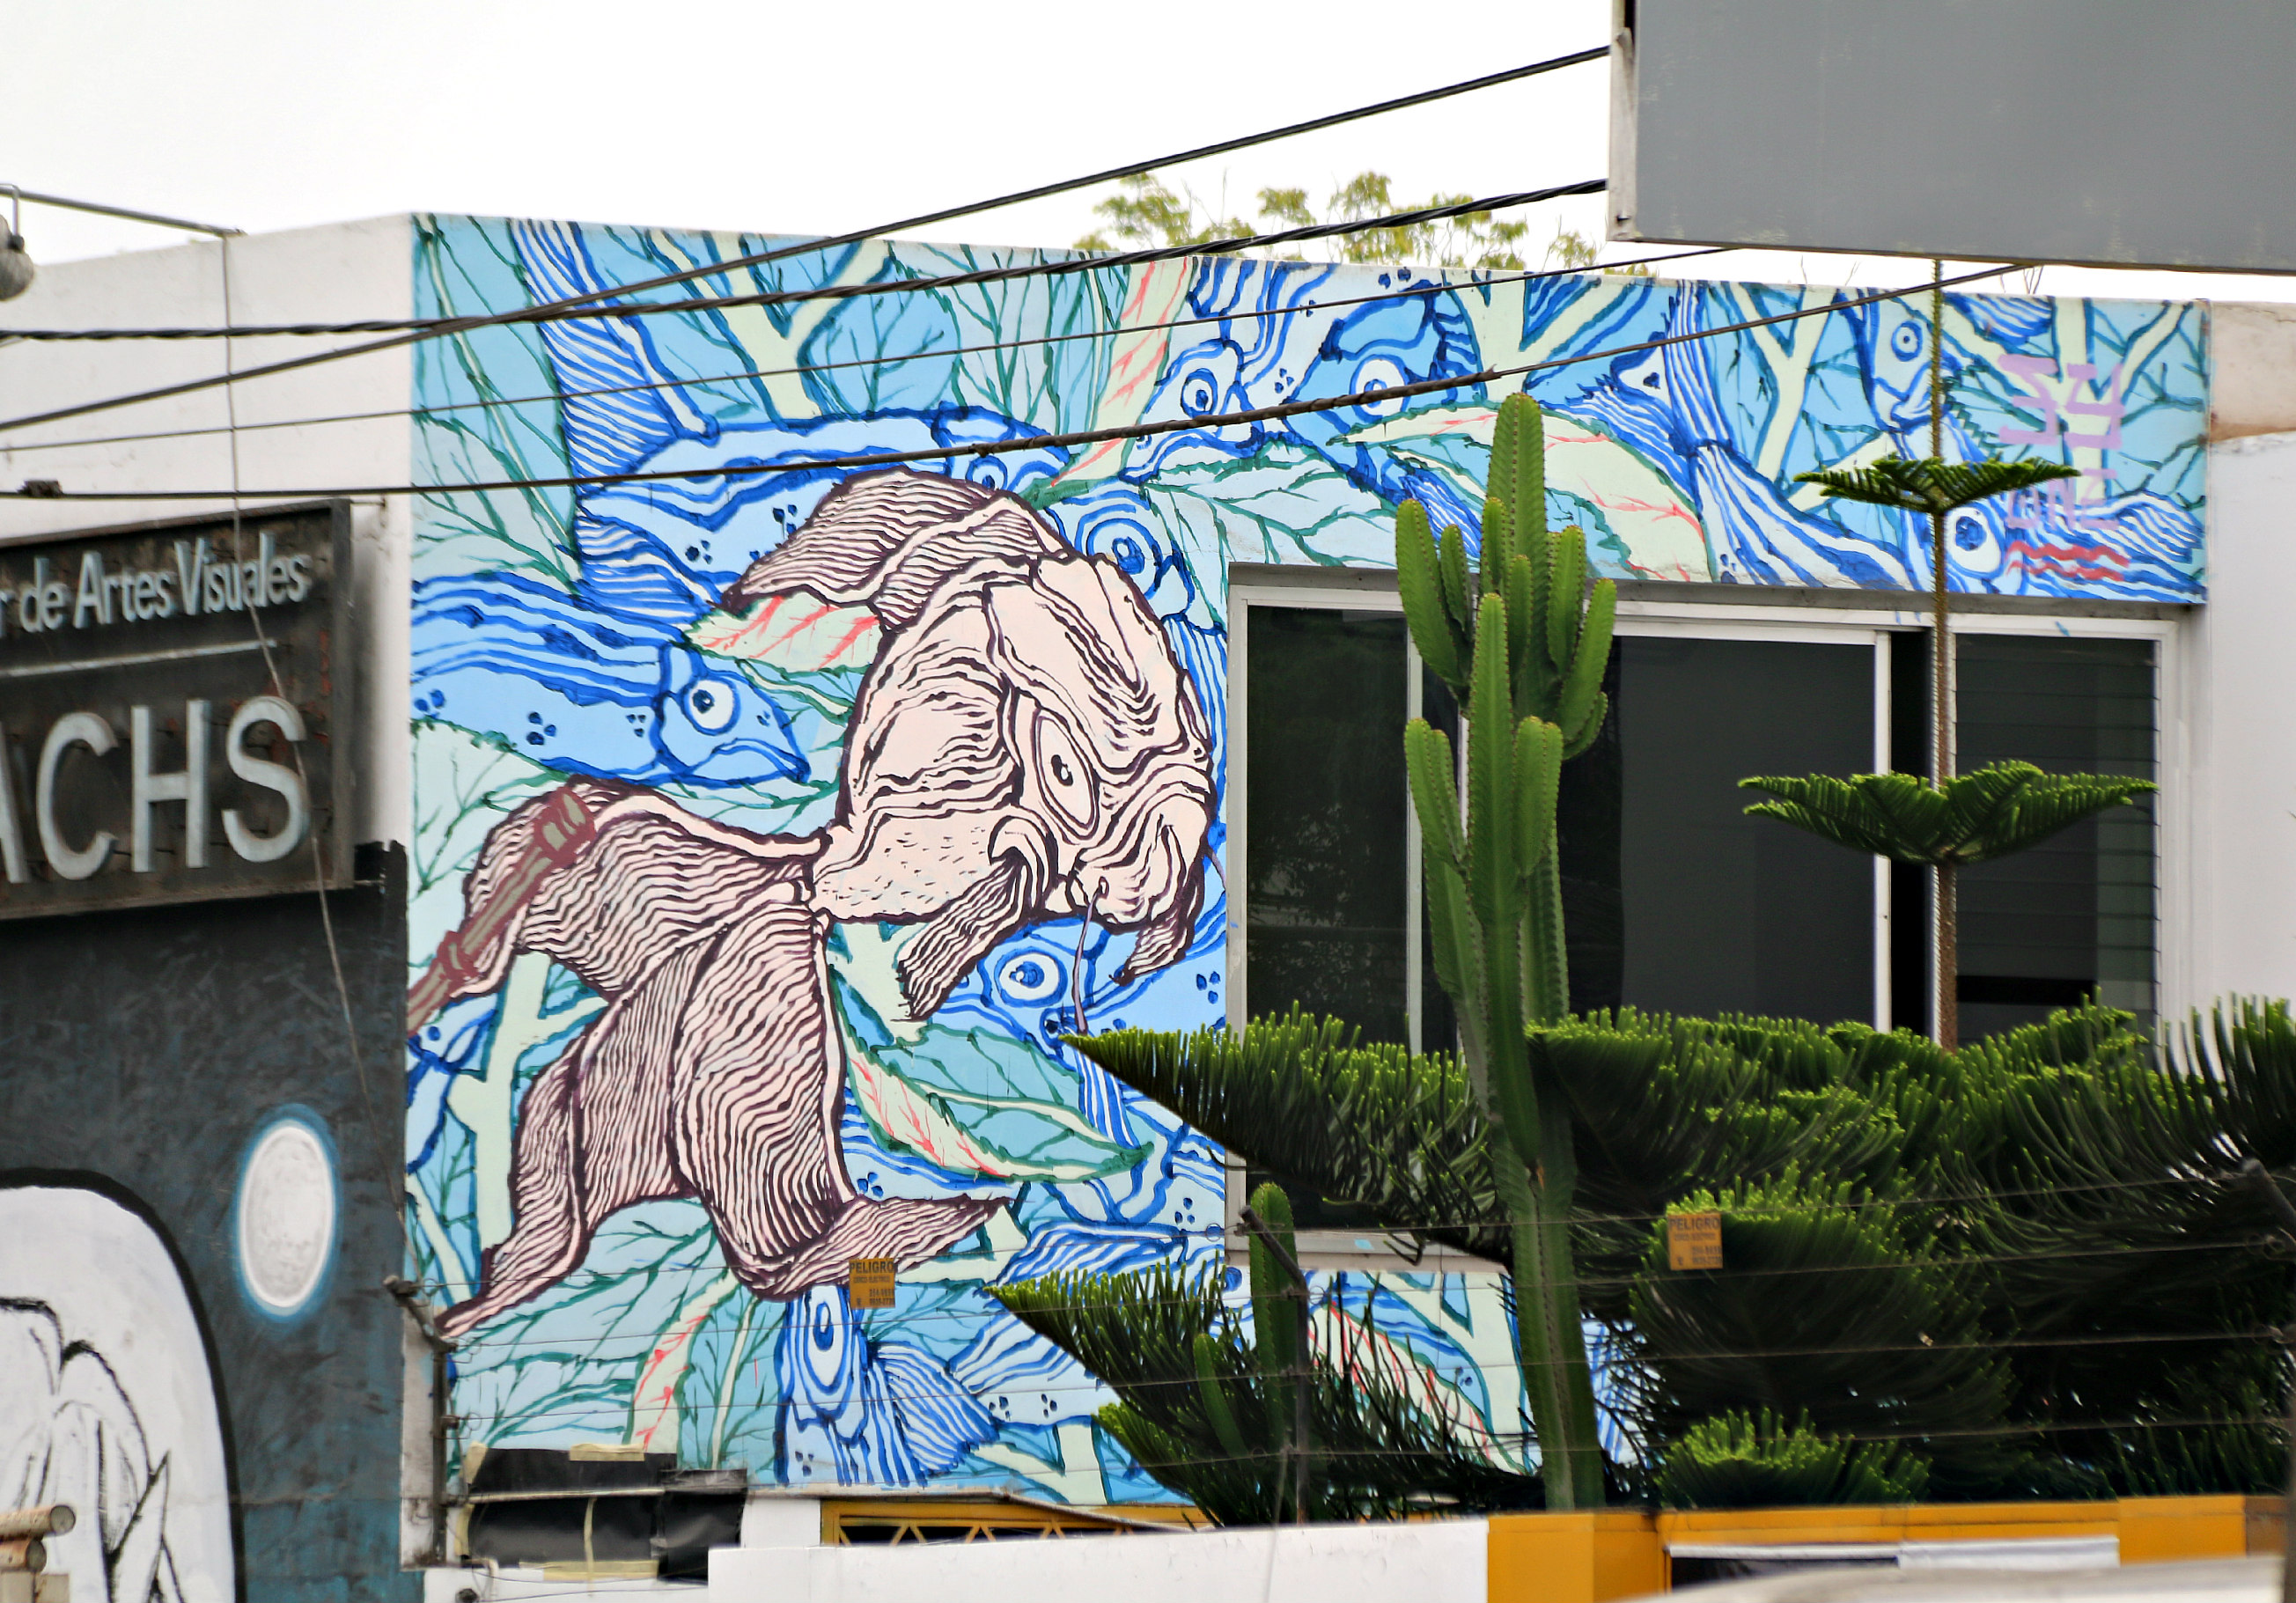 where to to find street art in Barranco, Lima.E. Sachs Instituto de Artes Visuales on San Grau, mural by Abraham Portocarrero, also known as Yandy Graffer